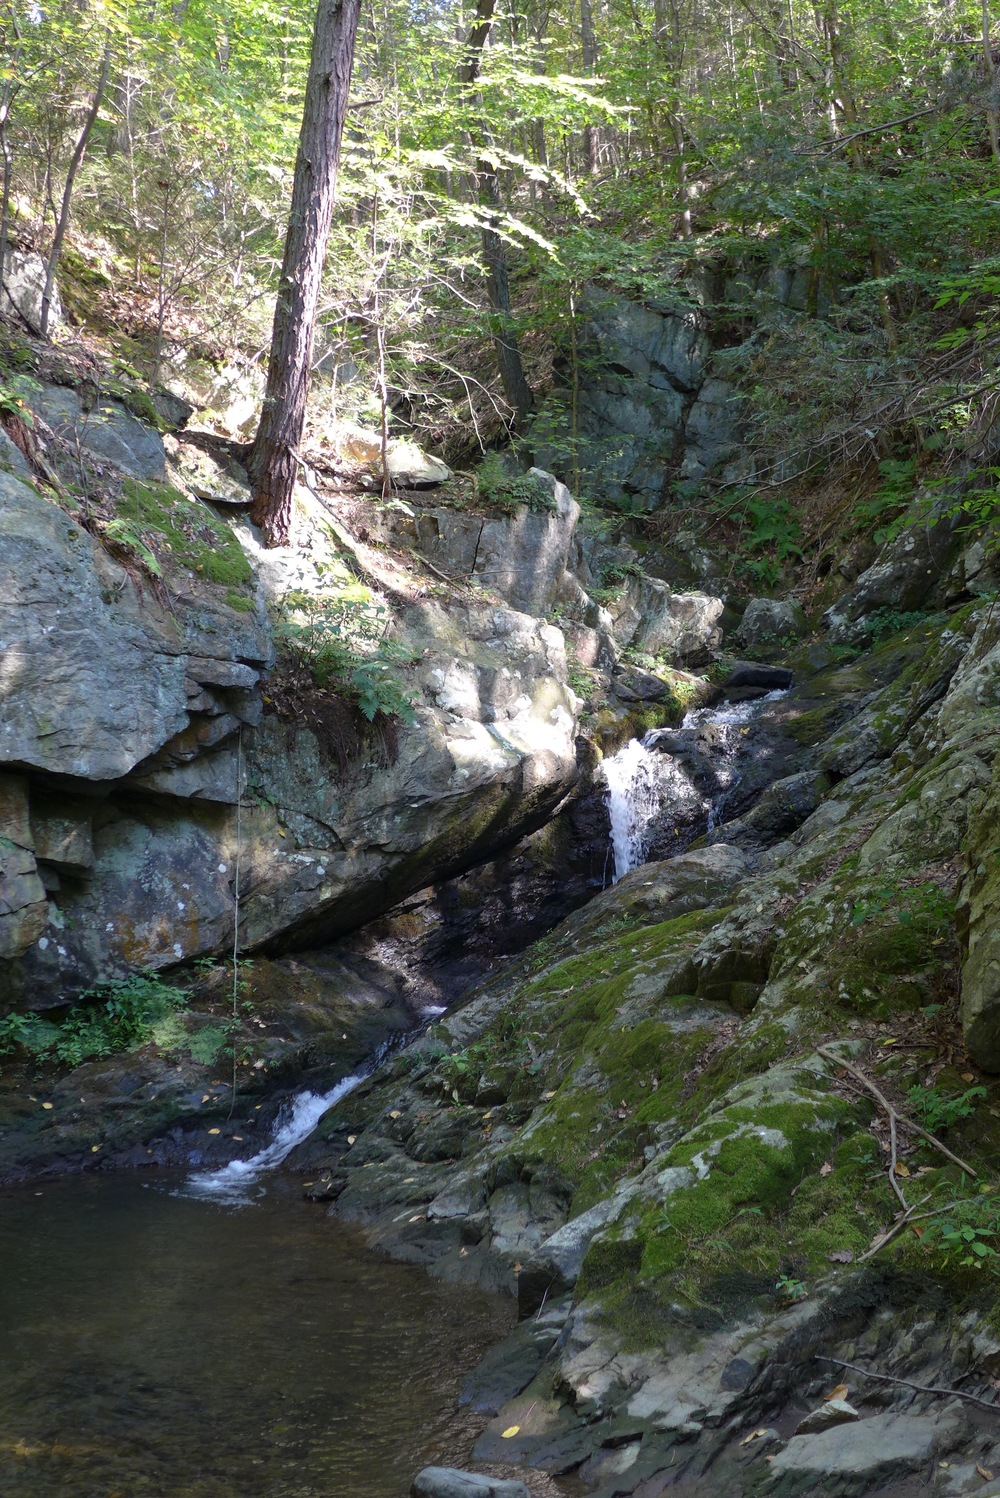 Upper falls at Philipstown park